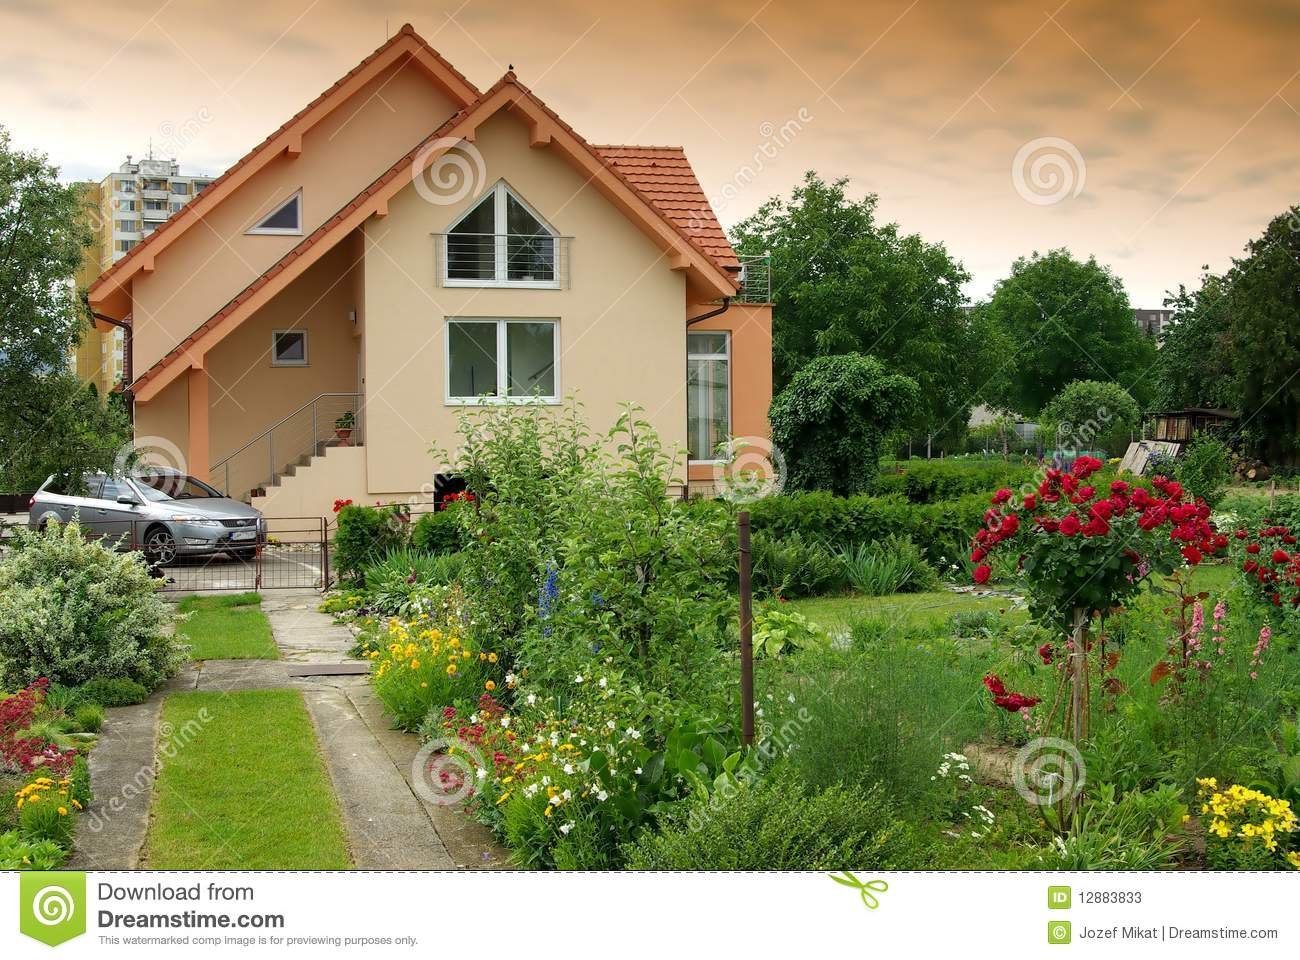 Nice house with the garden stock photos image 12883833 for Nice home image